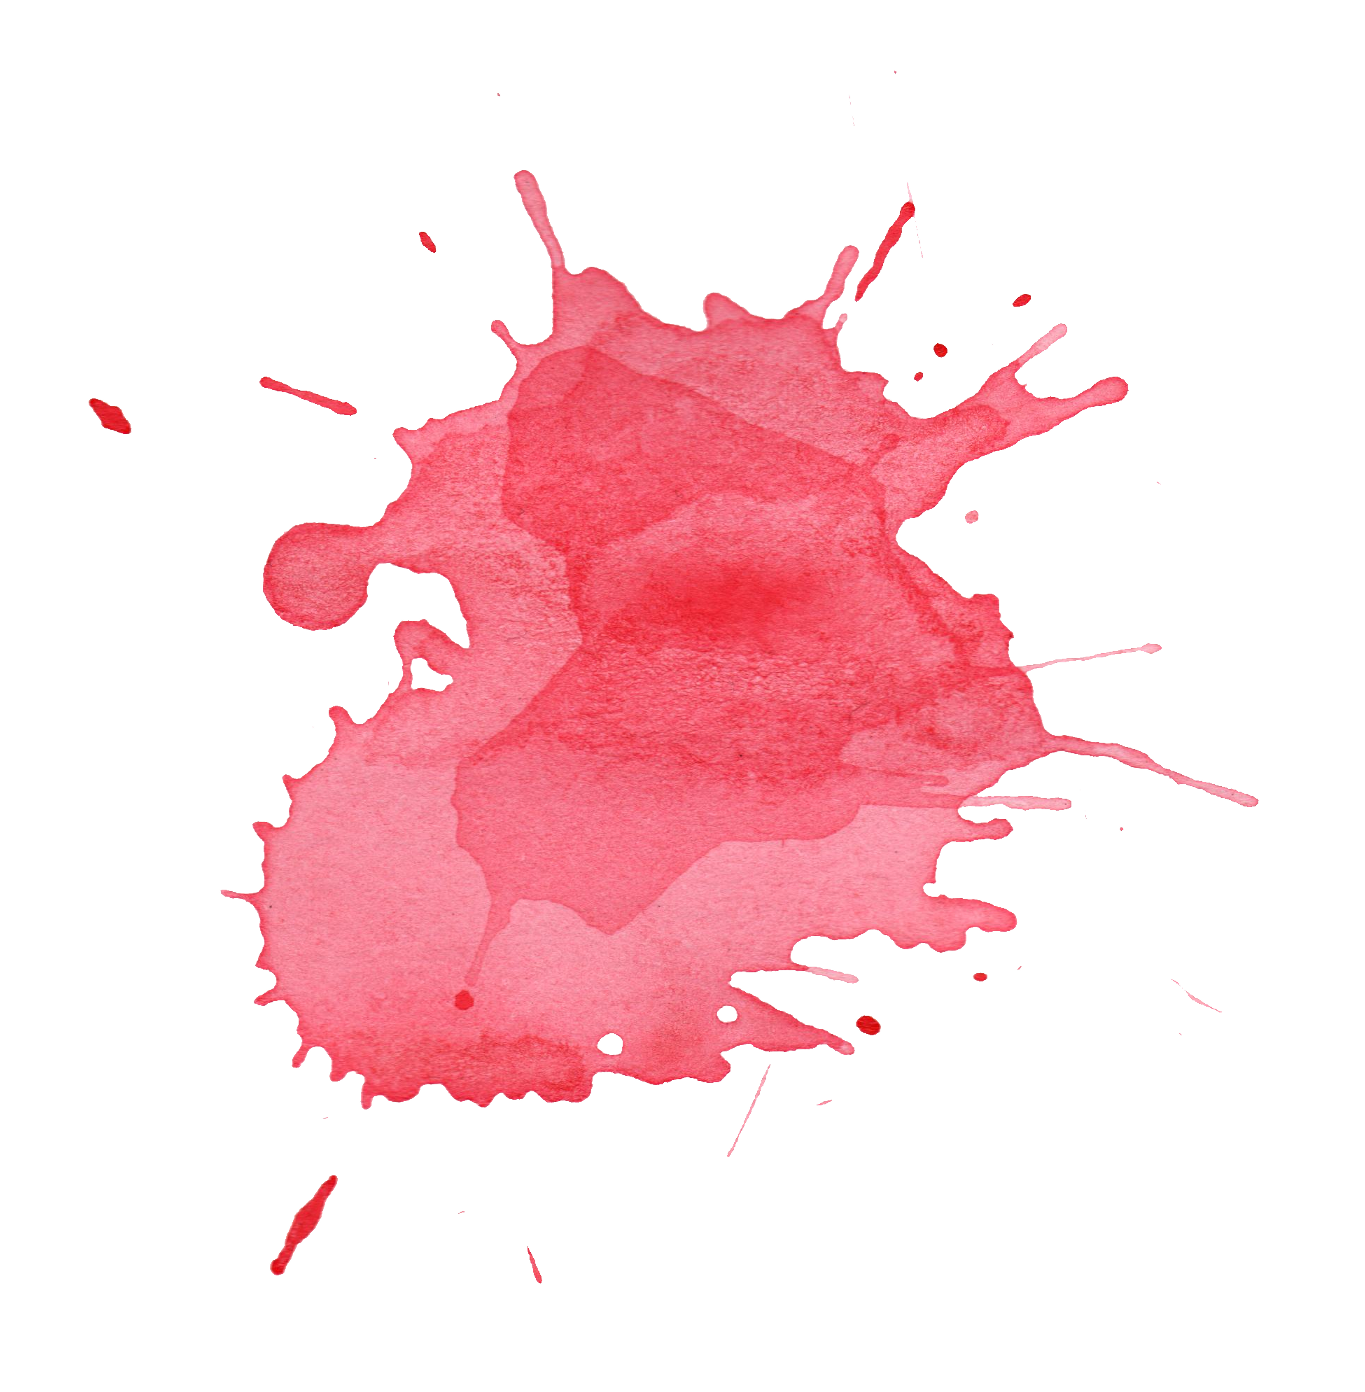 Watercolor stain png. Red splatter transparent